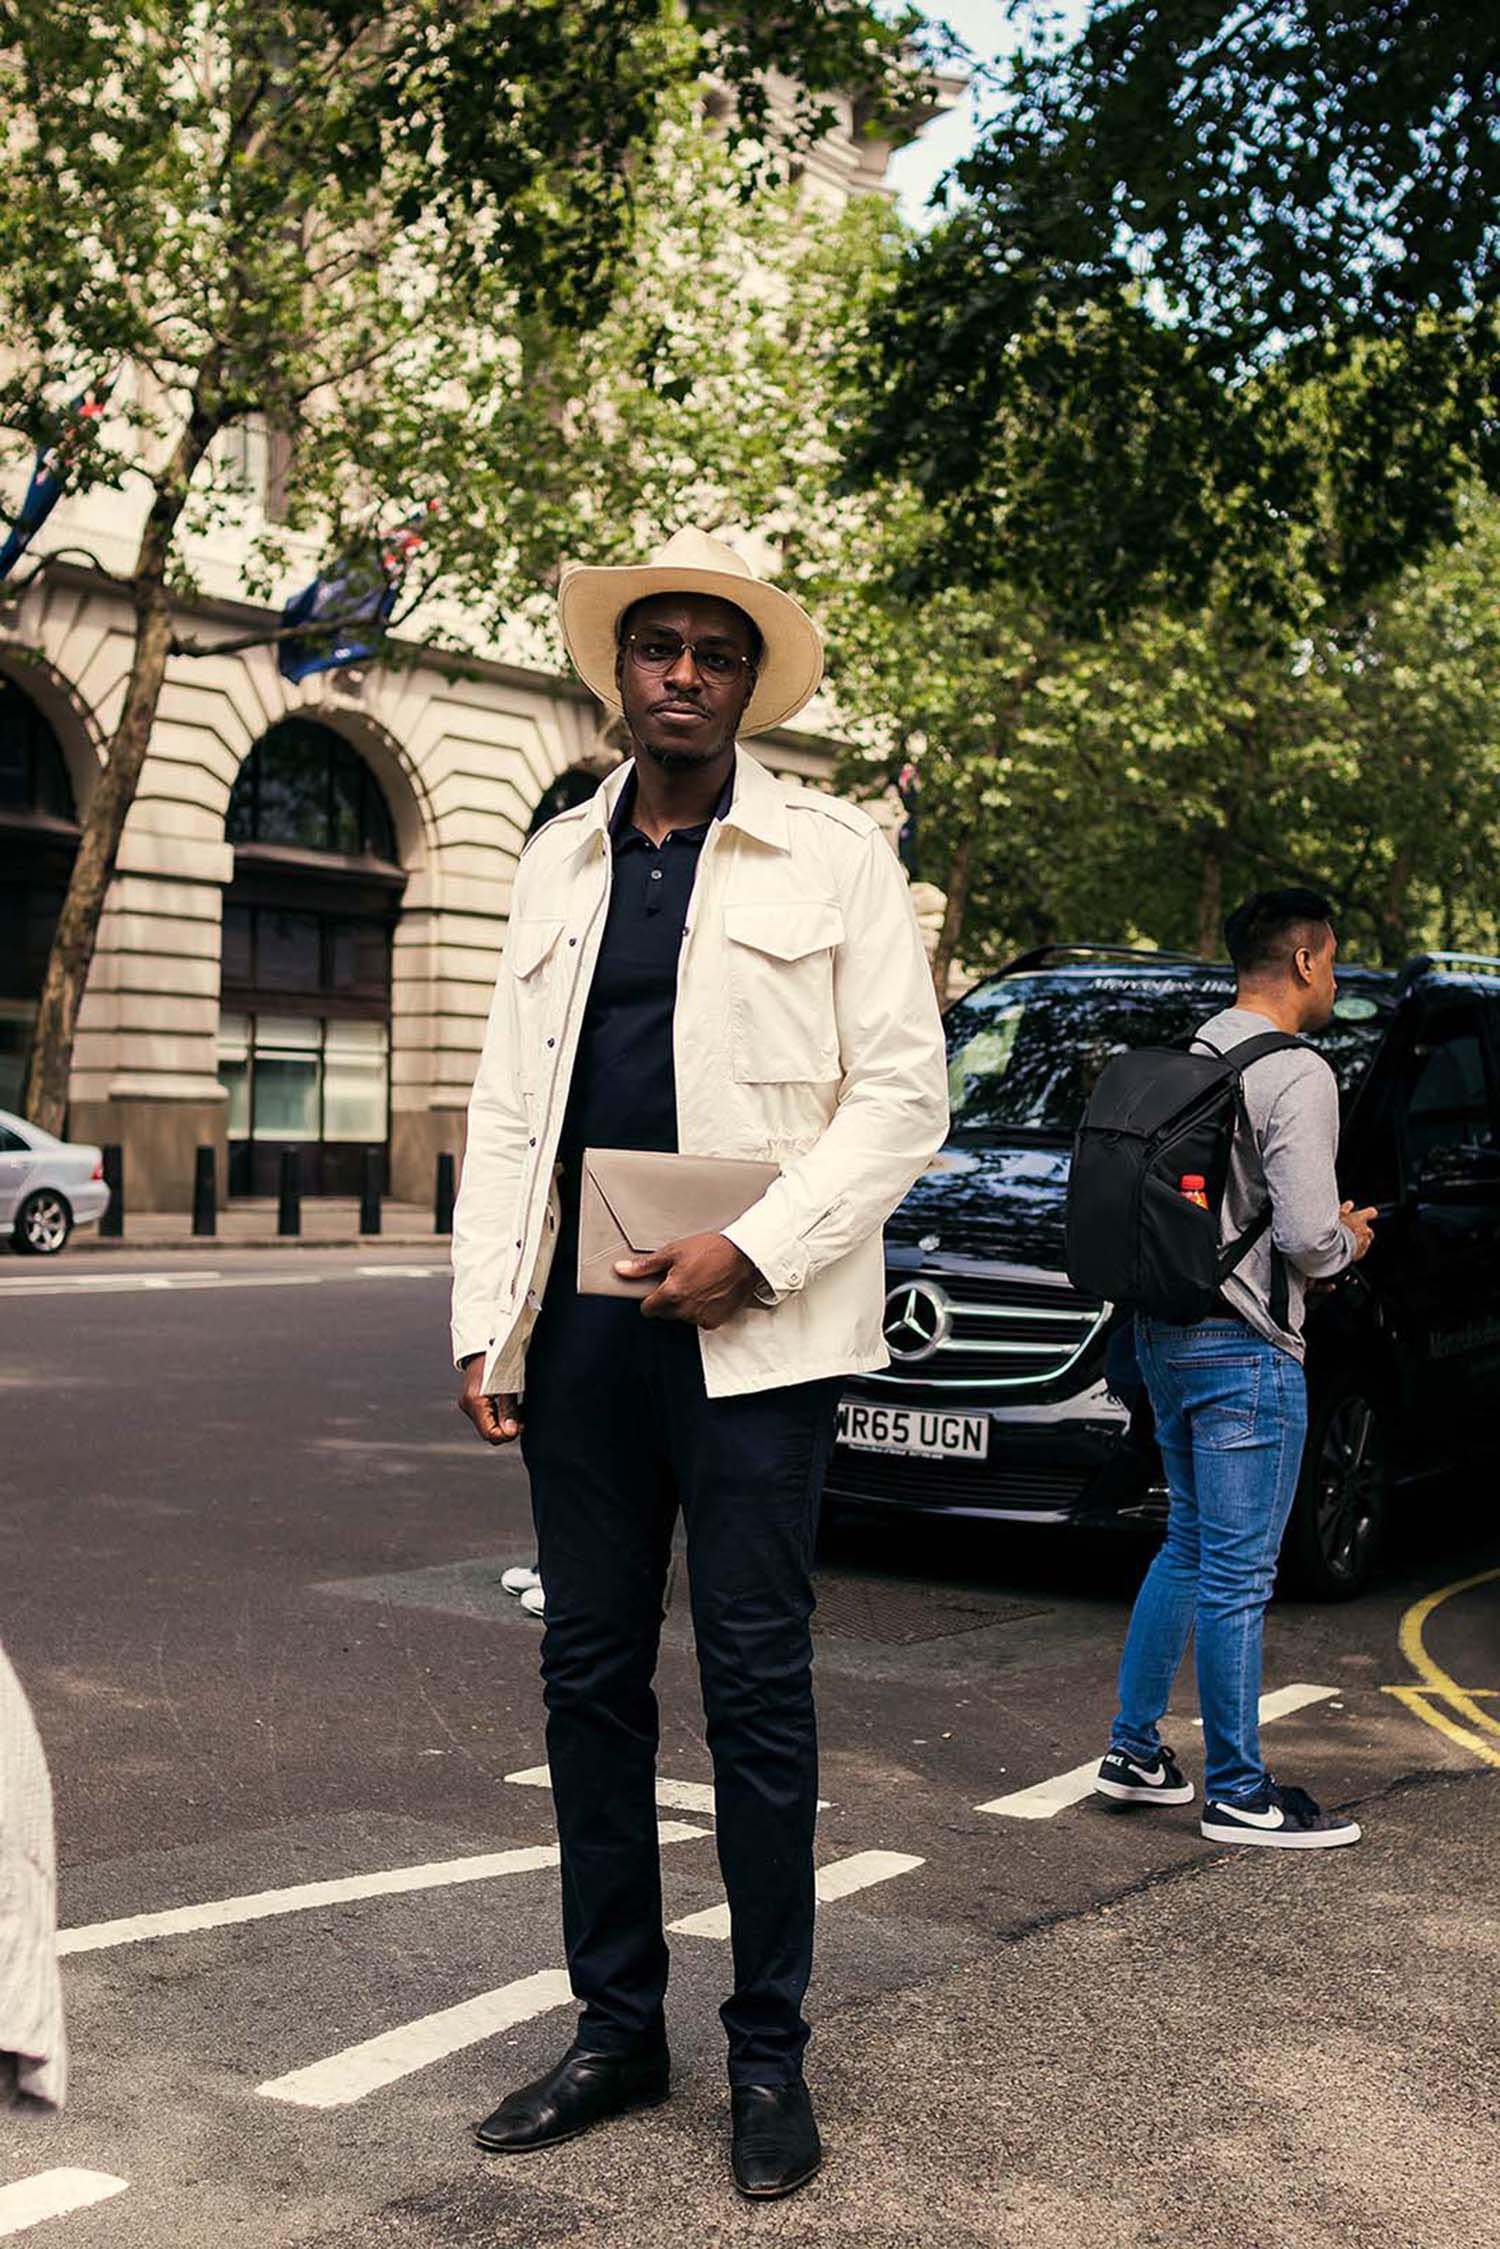 London Fashion Week Men's (LFWM Street Style by Olajide (JJ) Smith (Spotted By Mr. Smith for Sagaboi. Diversity in Street Style. London Fashion Week Men's (LFWM Street Style by Olajide (JJ) Smith (Spotted By Mr. Smith for Sagaboi. Diversity in Street Style. Representation in stock imagery.